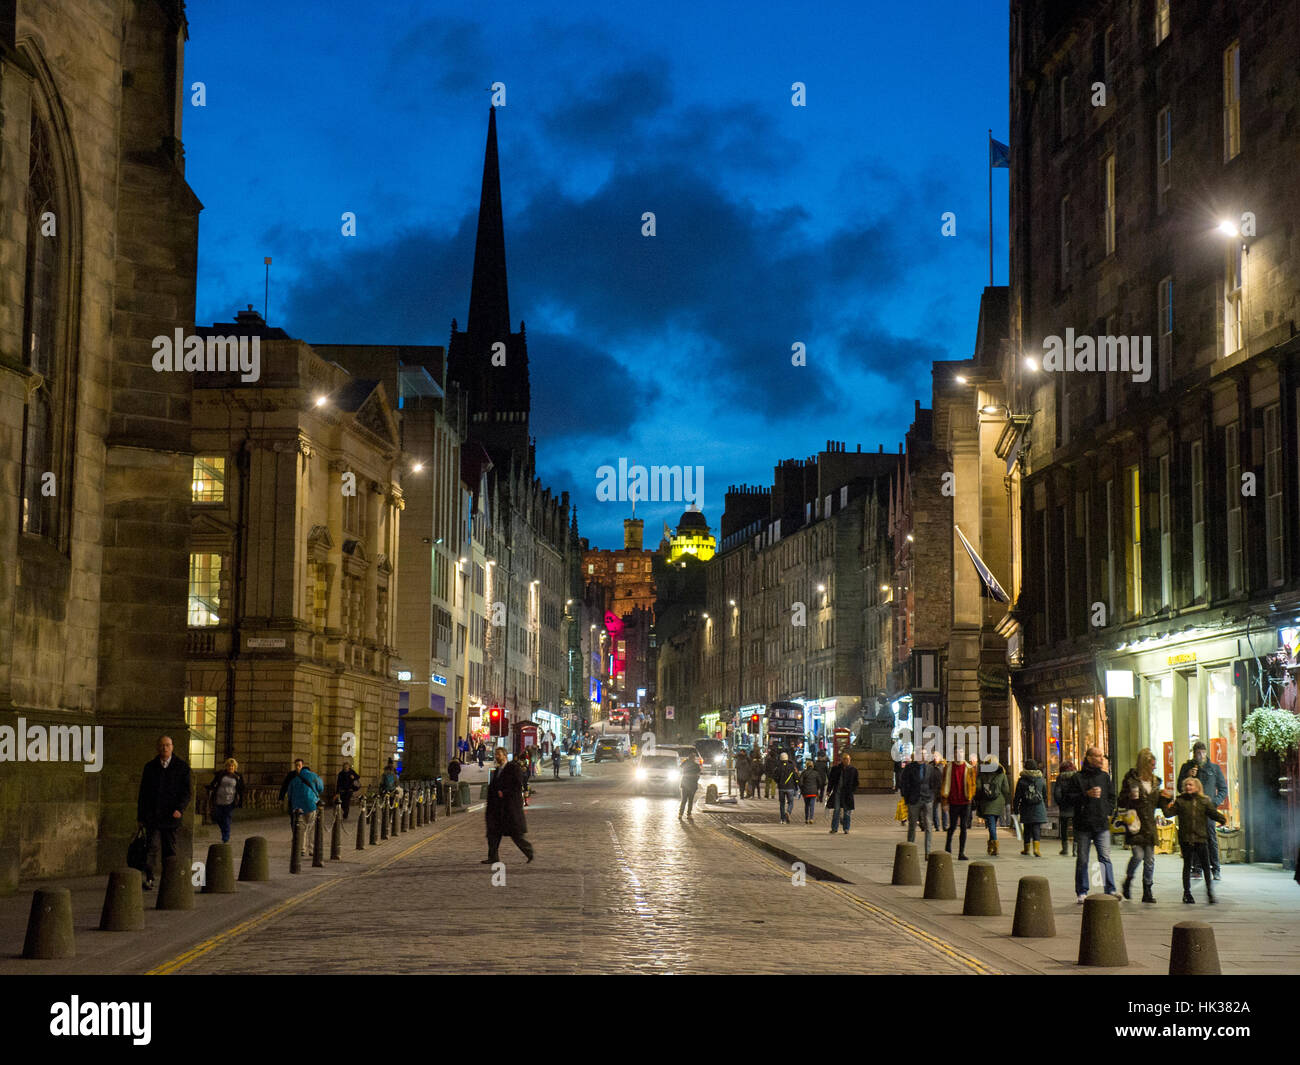 Edinburgh, Scotland - The Royal Mile/ High street in the old town of Edinburgh with unidentified people. - Stock Image